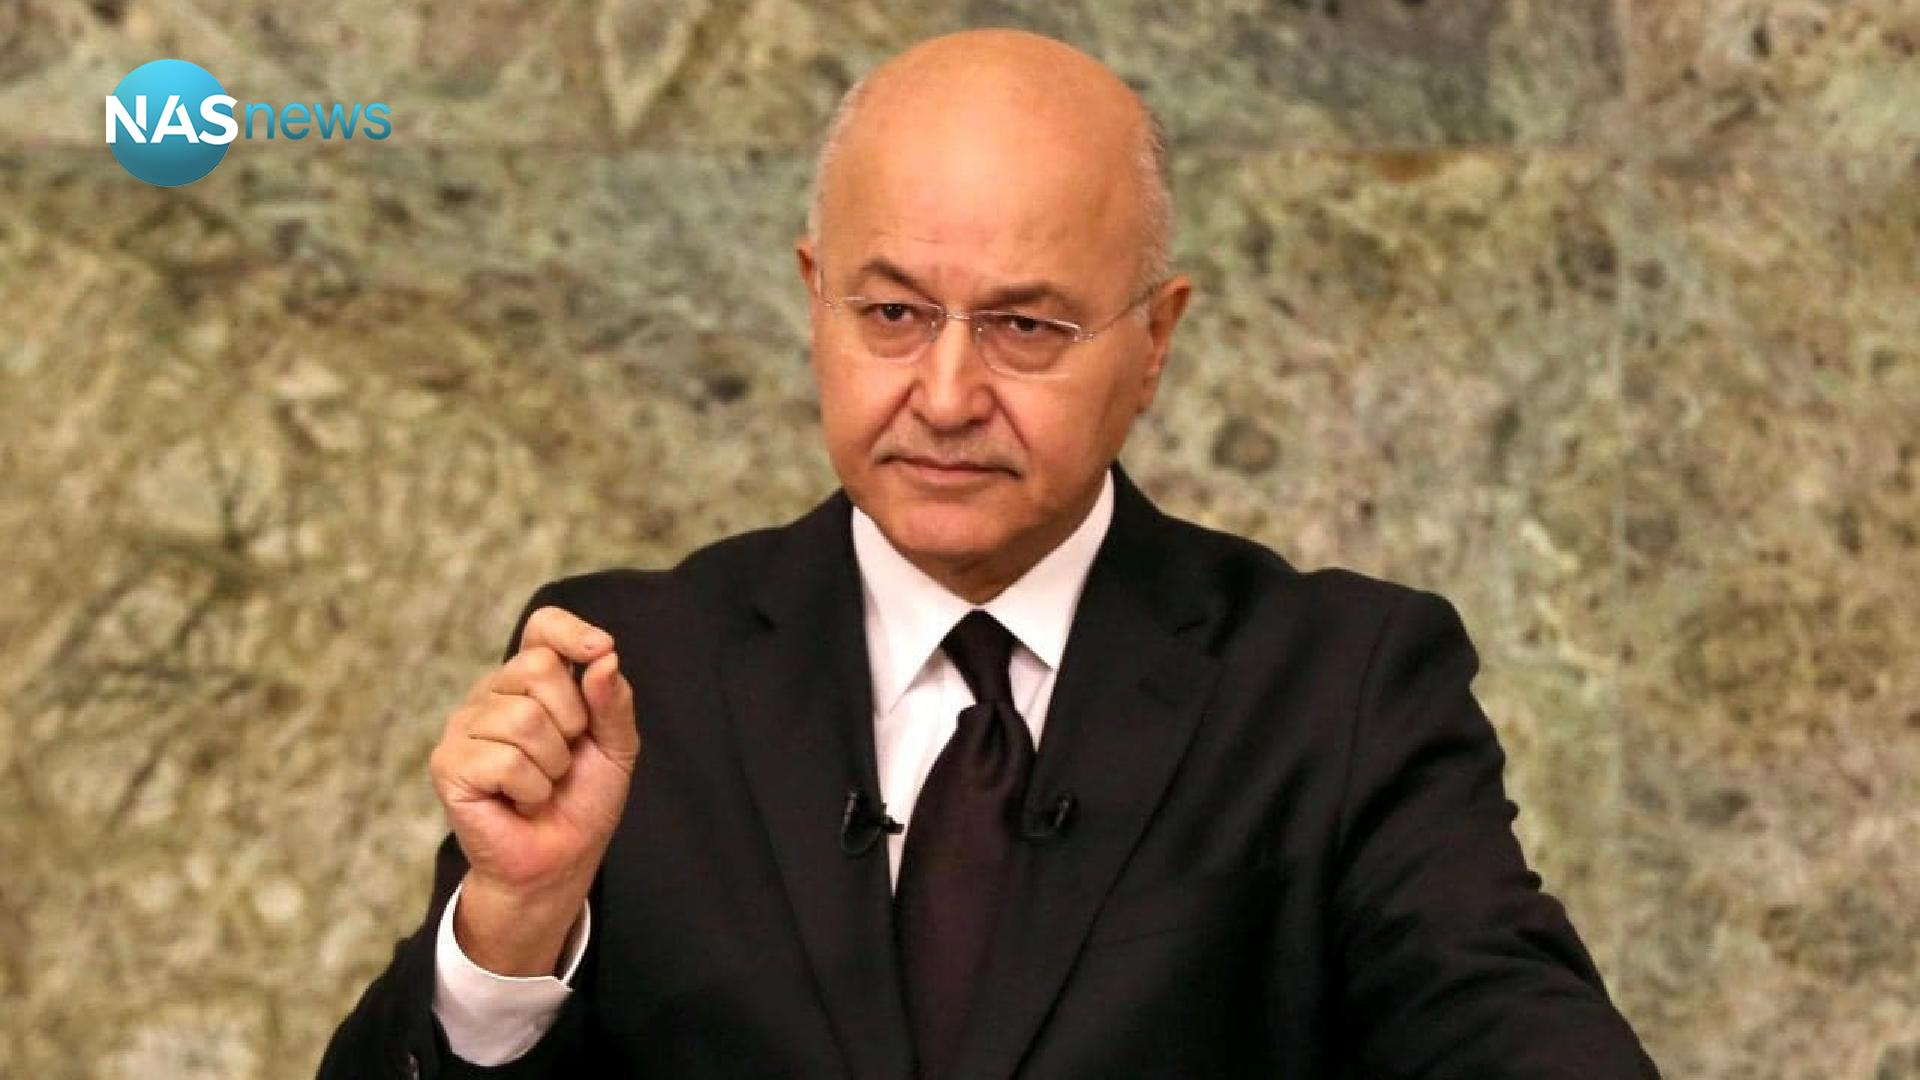 Barham Salih - The world is looking forward to the Iraqi elections and we want them to be able to achieve reform